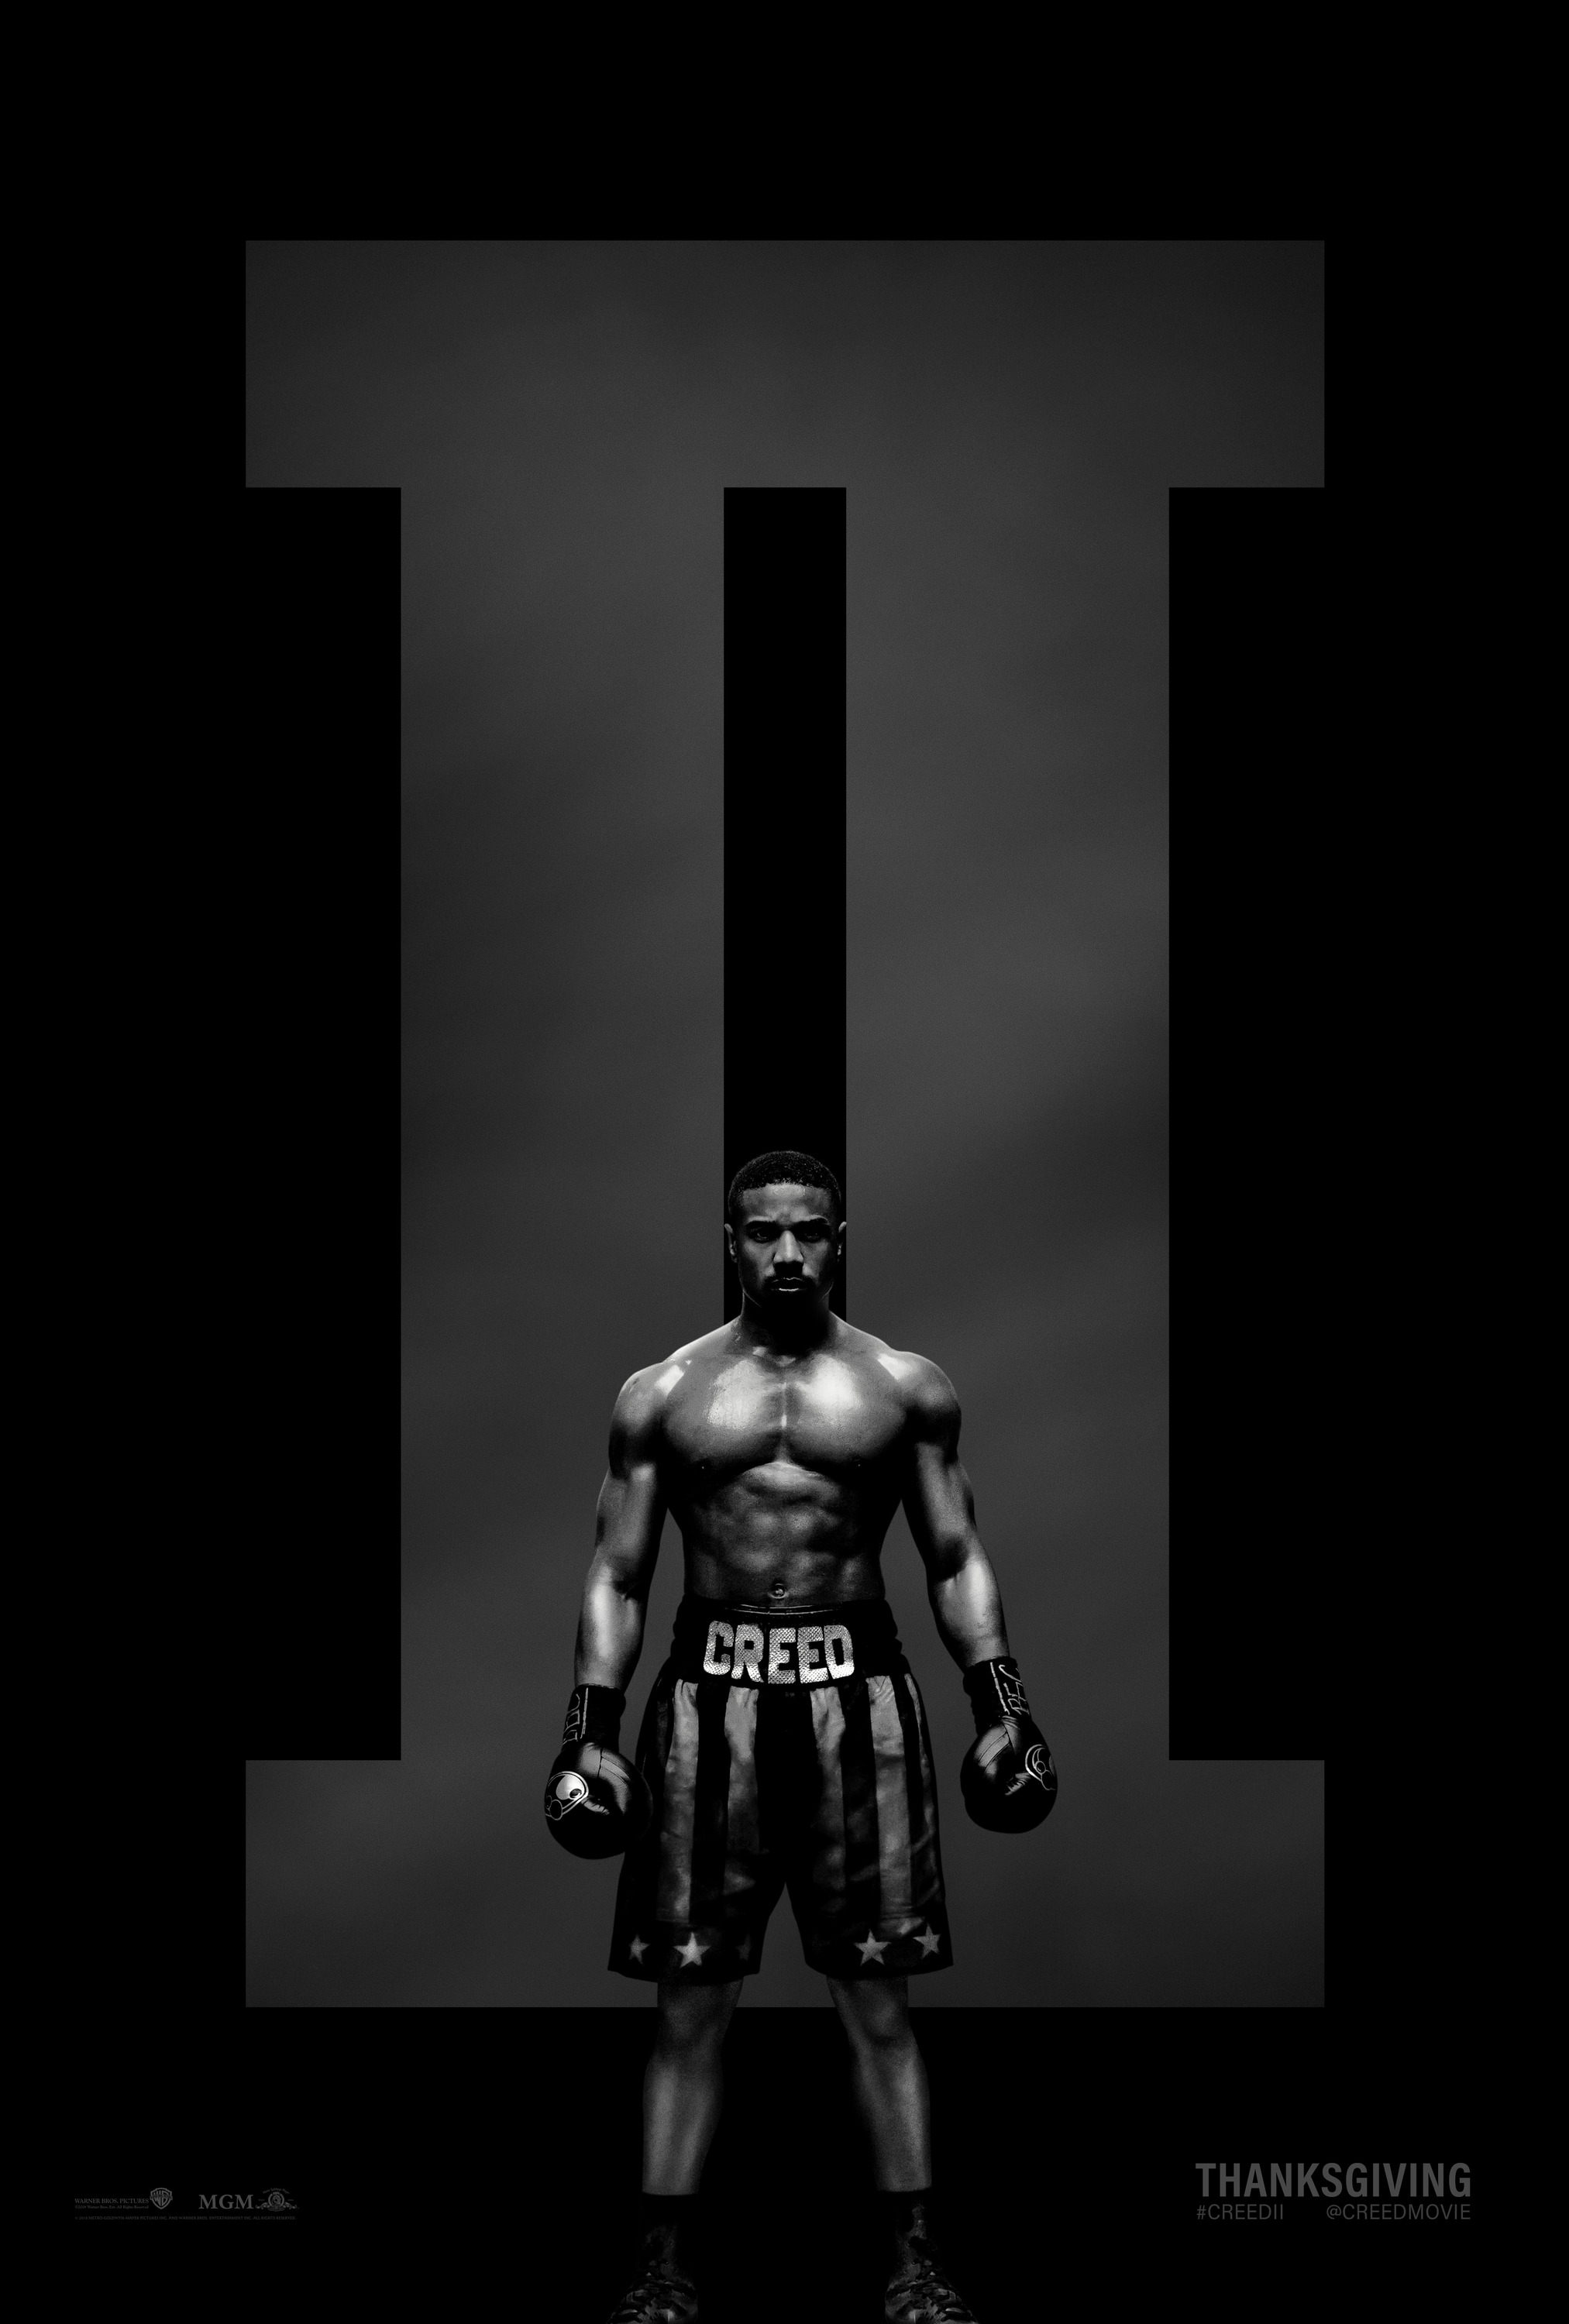 creed2-poster1big.jpg